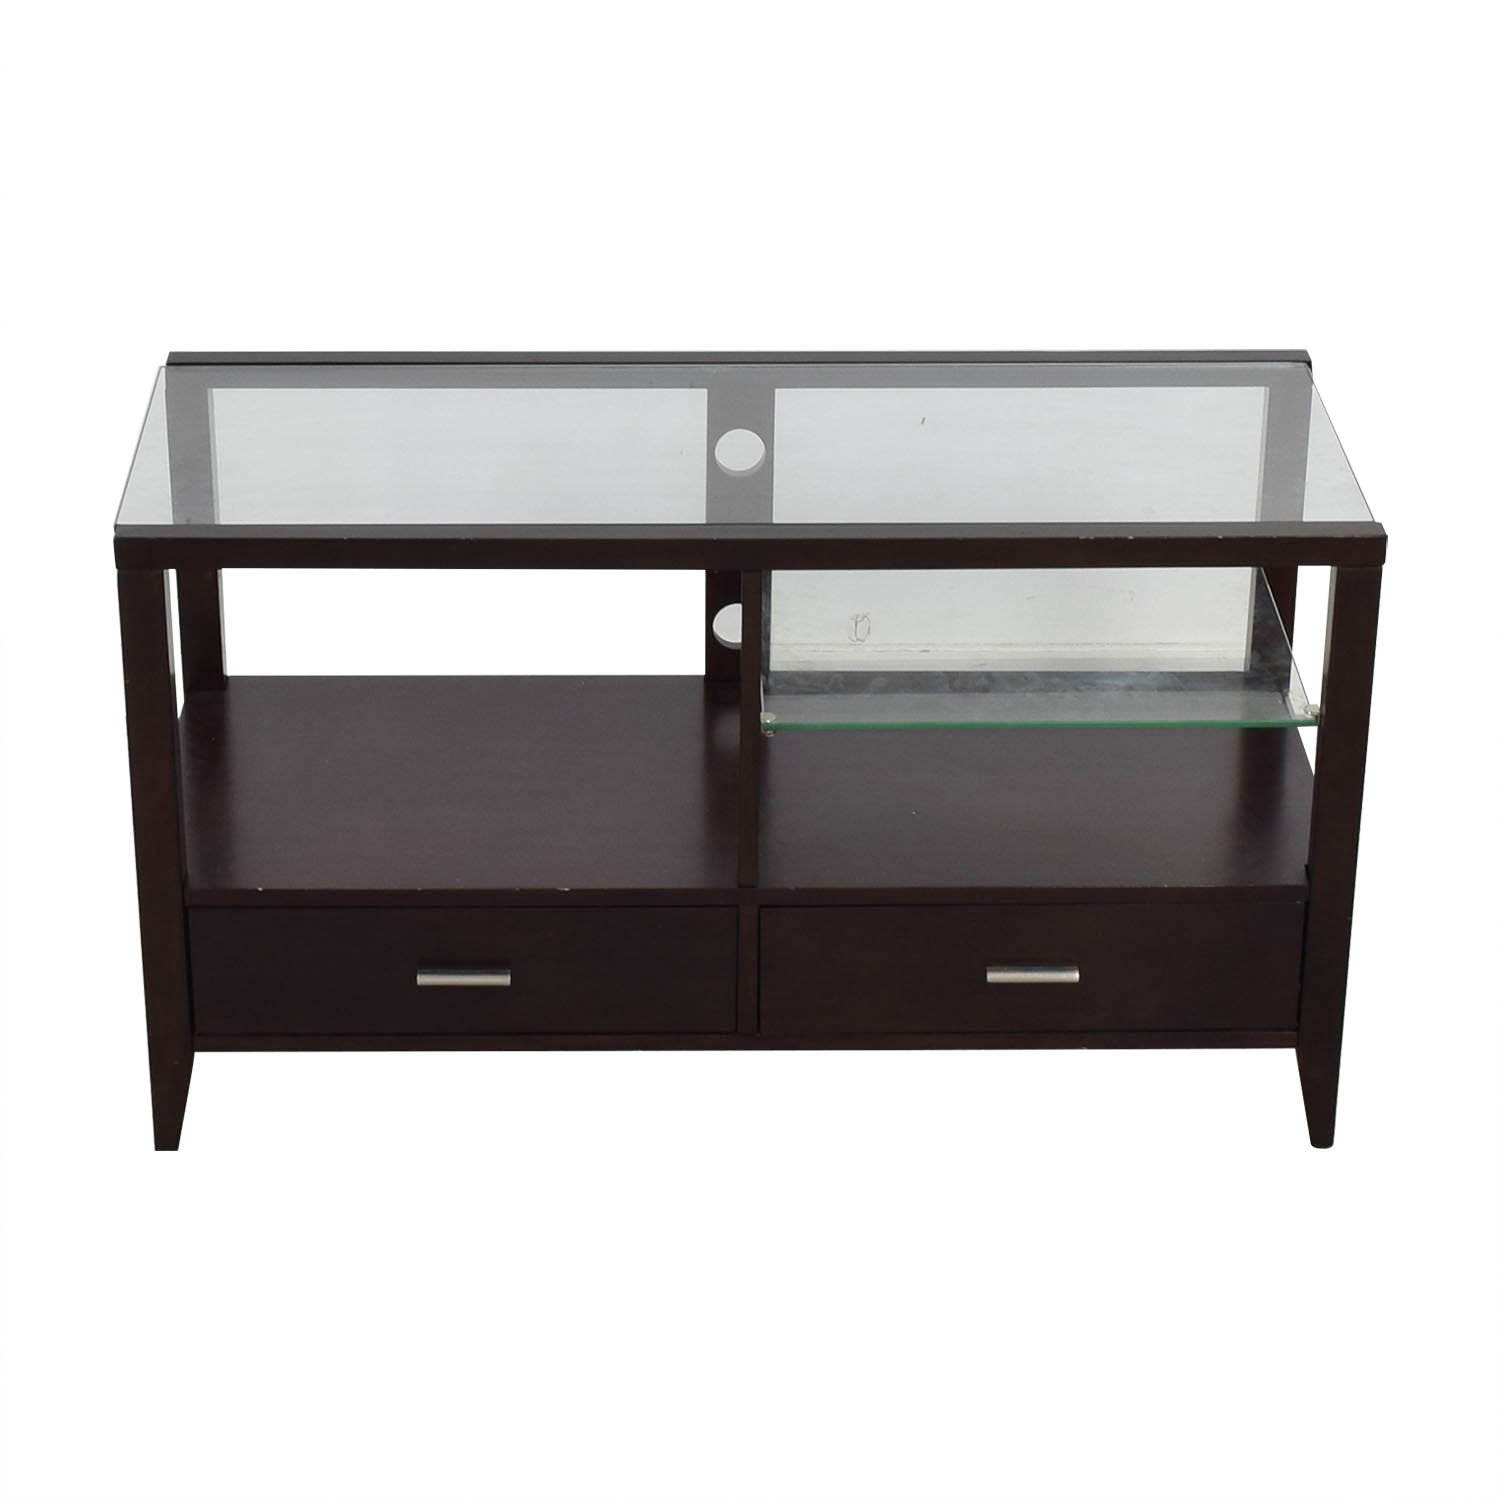 Belfort Furniture  Wood and Glass Entertainment Console / Storage